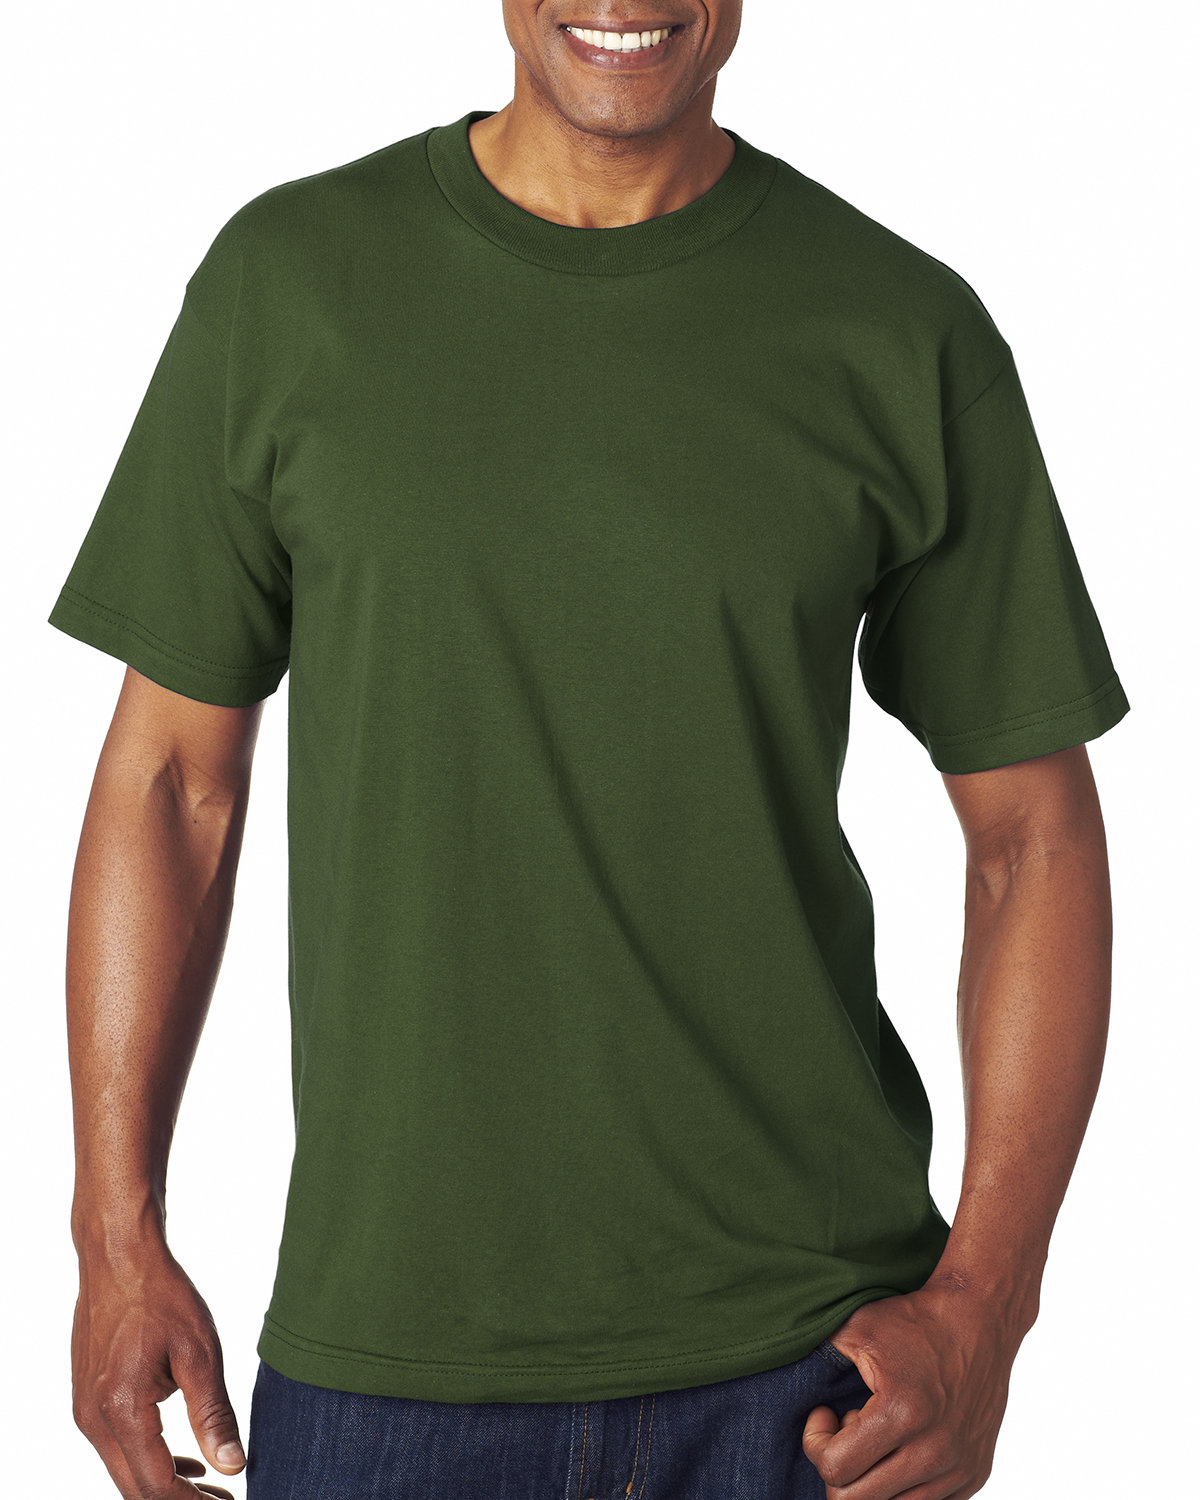 Bayside Adult 6.1 oz., 100% Cotton T-Shirt FOREST GREEN